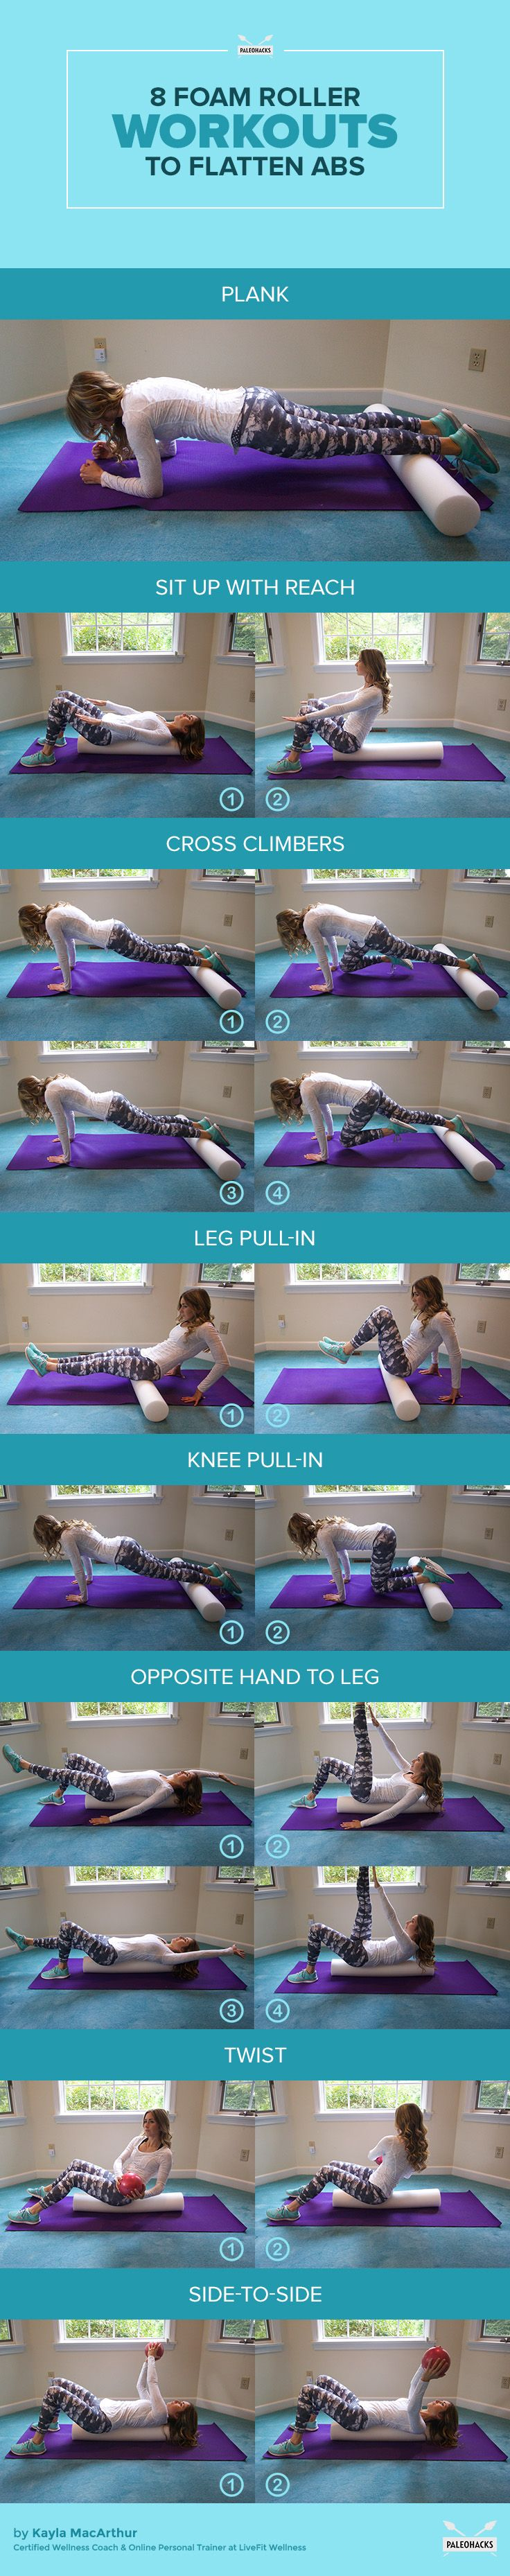 Foam Roller Workouts | Exercises for a stronger core #FlatterAbs